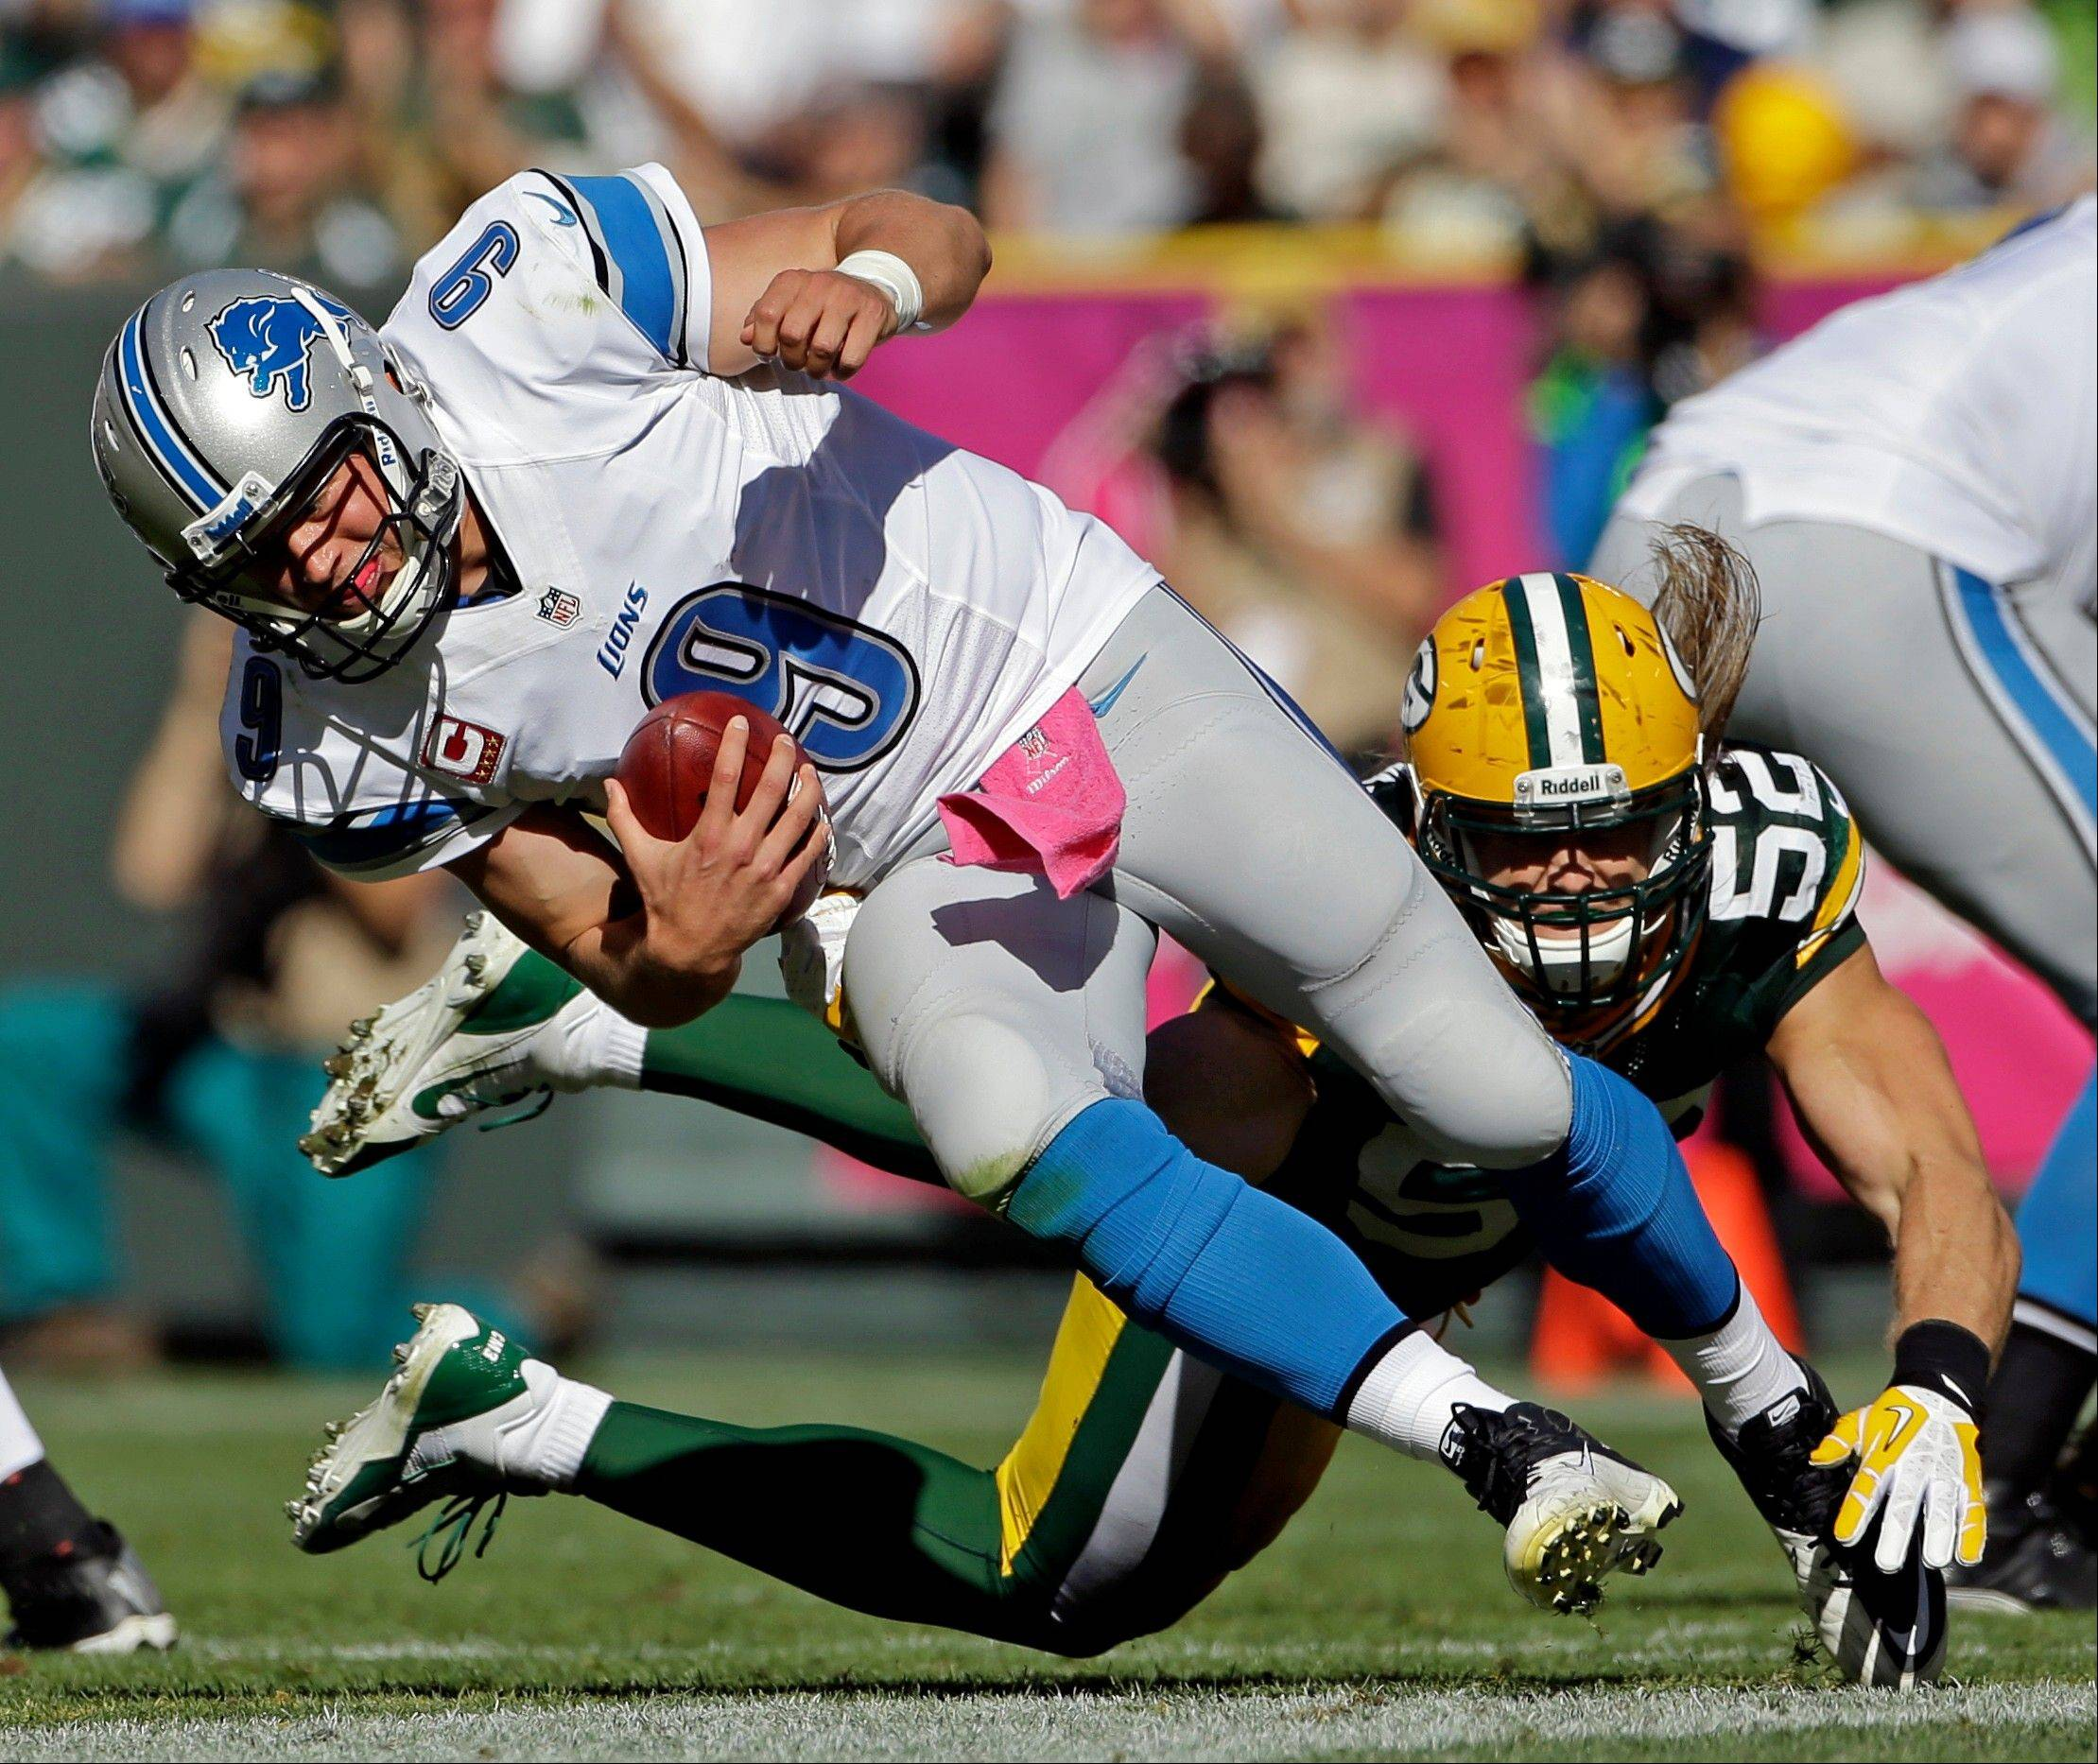 The Packers' Clay Matthews sacks Detroit quarterback Matthew Stafford during the second half of Sunday's game in Green Bay. Matthews injured his thumb on the play.